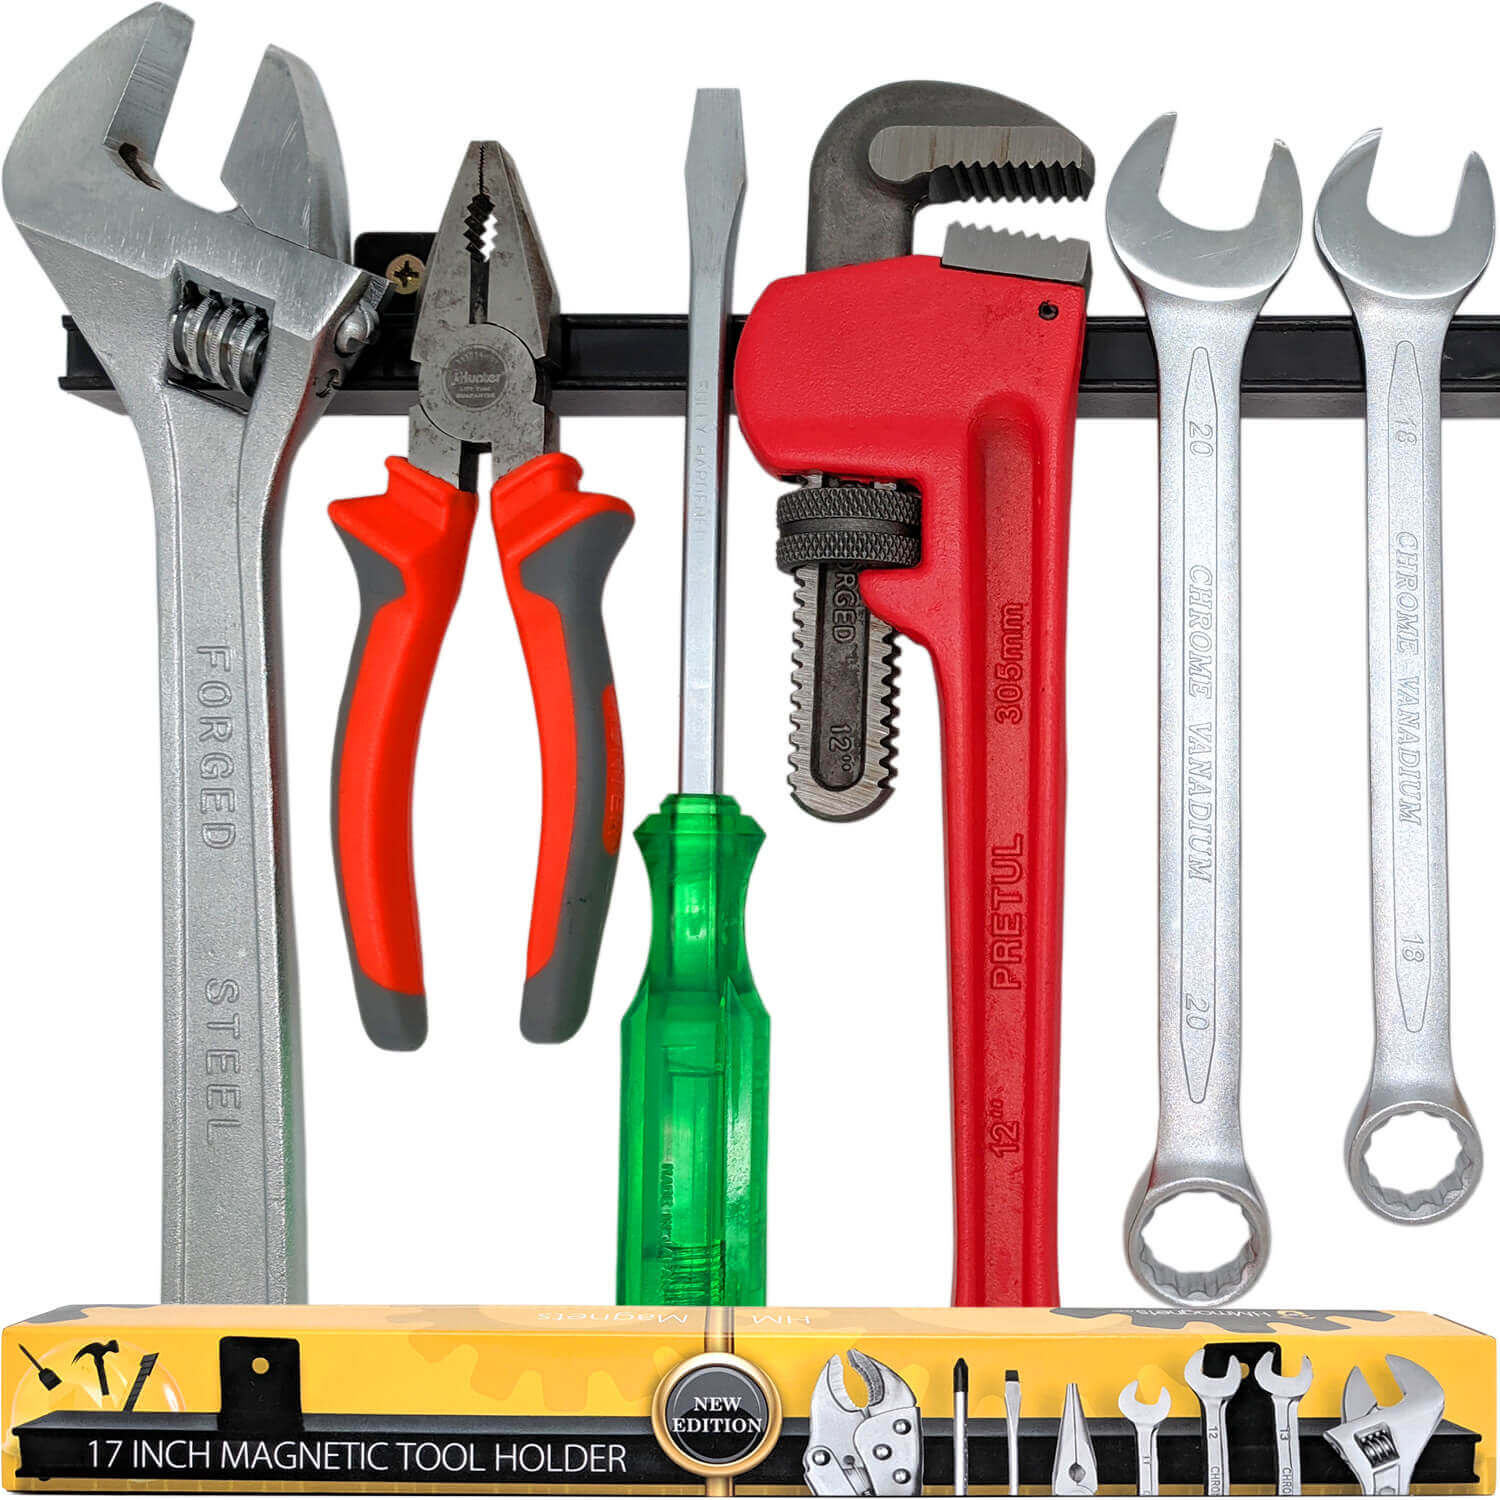 Magnetic Tool Holder Wall Mount Screwdriver Wrench Scissors Organizer Rack